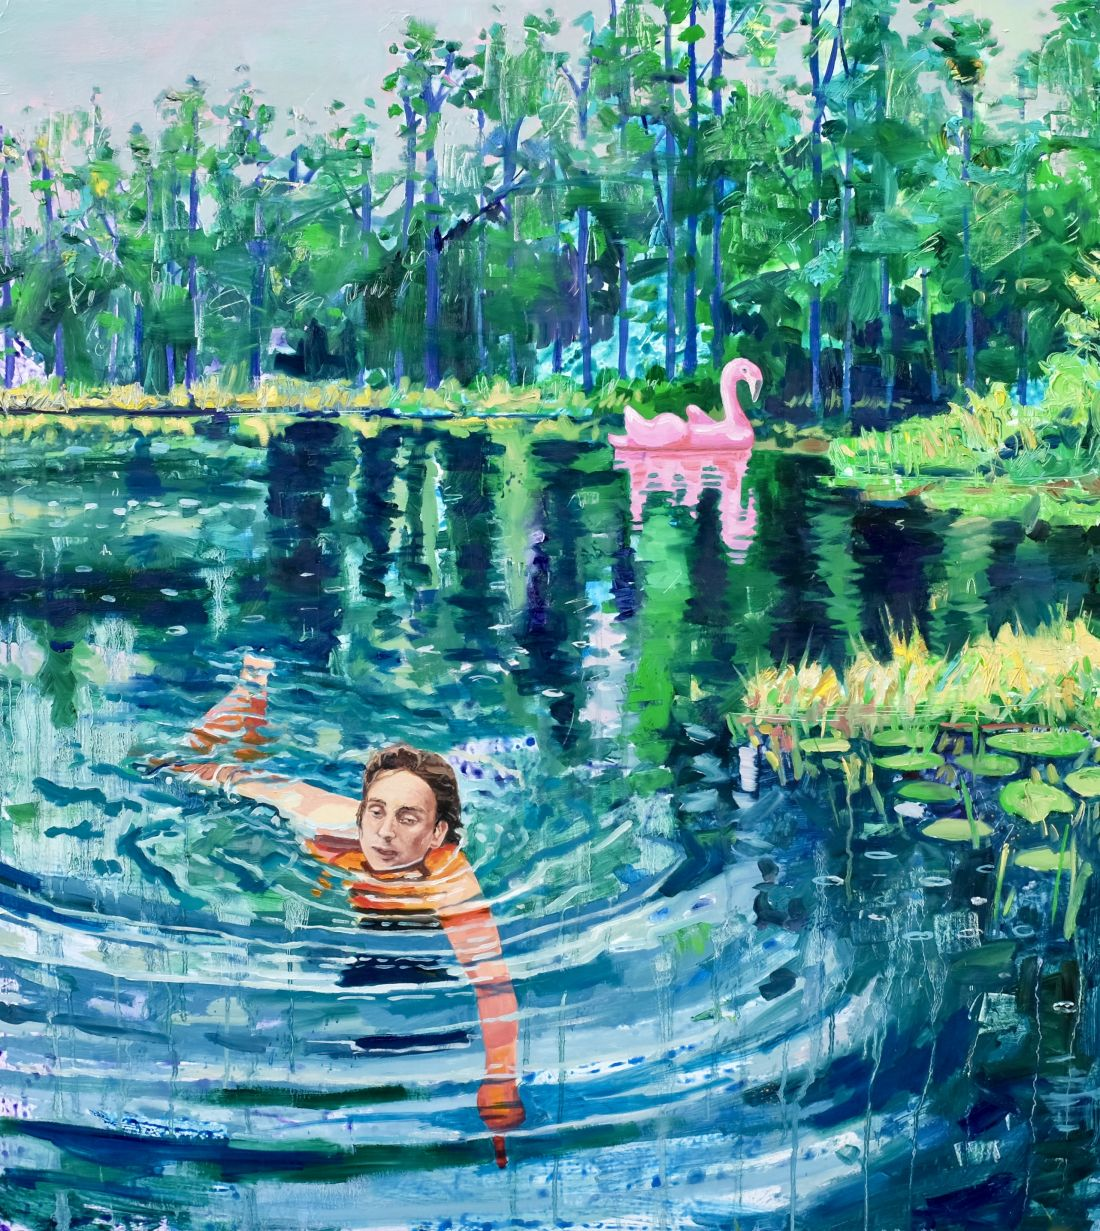 Paintings of Utopia by Danielle Klebes that pose the question, 'Does paradise exist?'